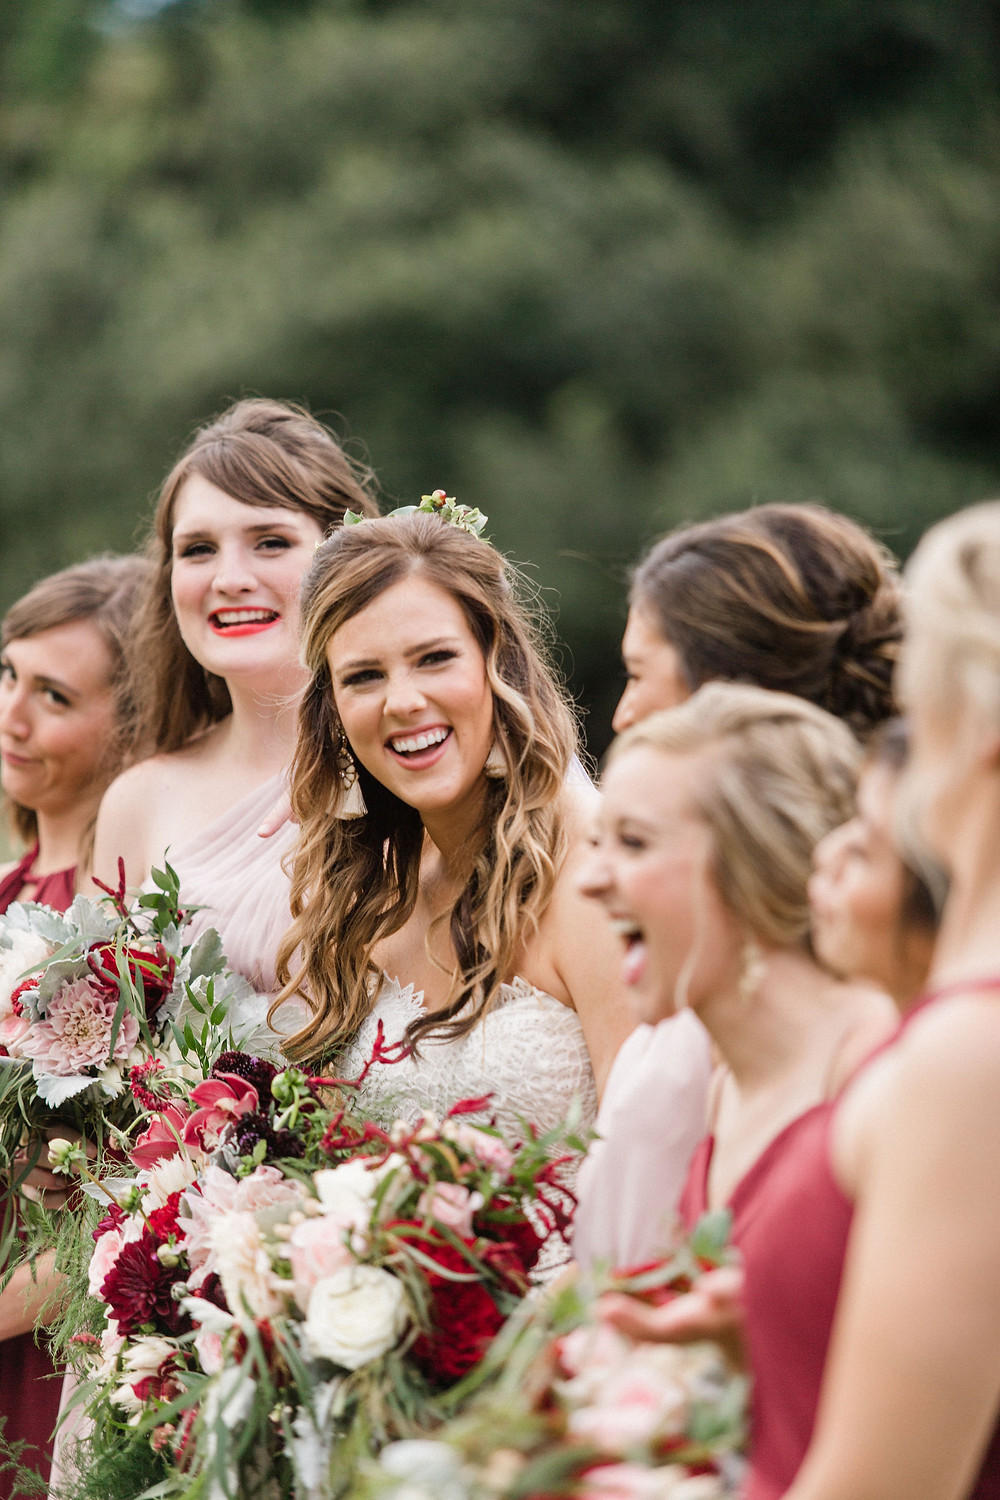 Chicory Wedding in New Orleans with Tasha Rae Photography, Mise En Place Events, Lovegood Wedding & Event Rentals | Cranberry Wedding, Vintage Rentals, Lounge Space, Wooden Backdrop Arbor, Wooden Crates, Bride and Bridesmaids